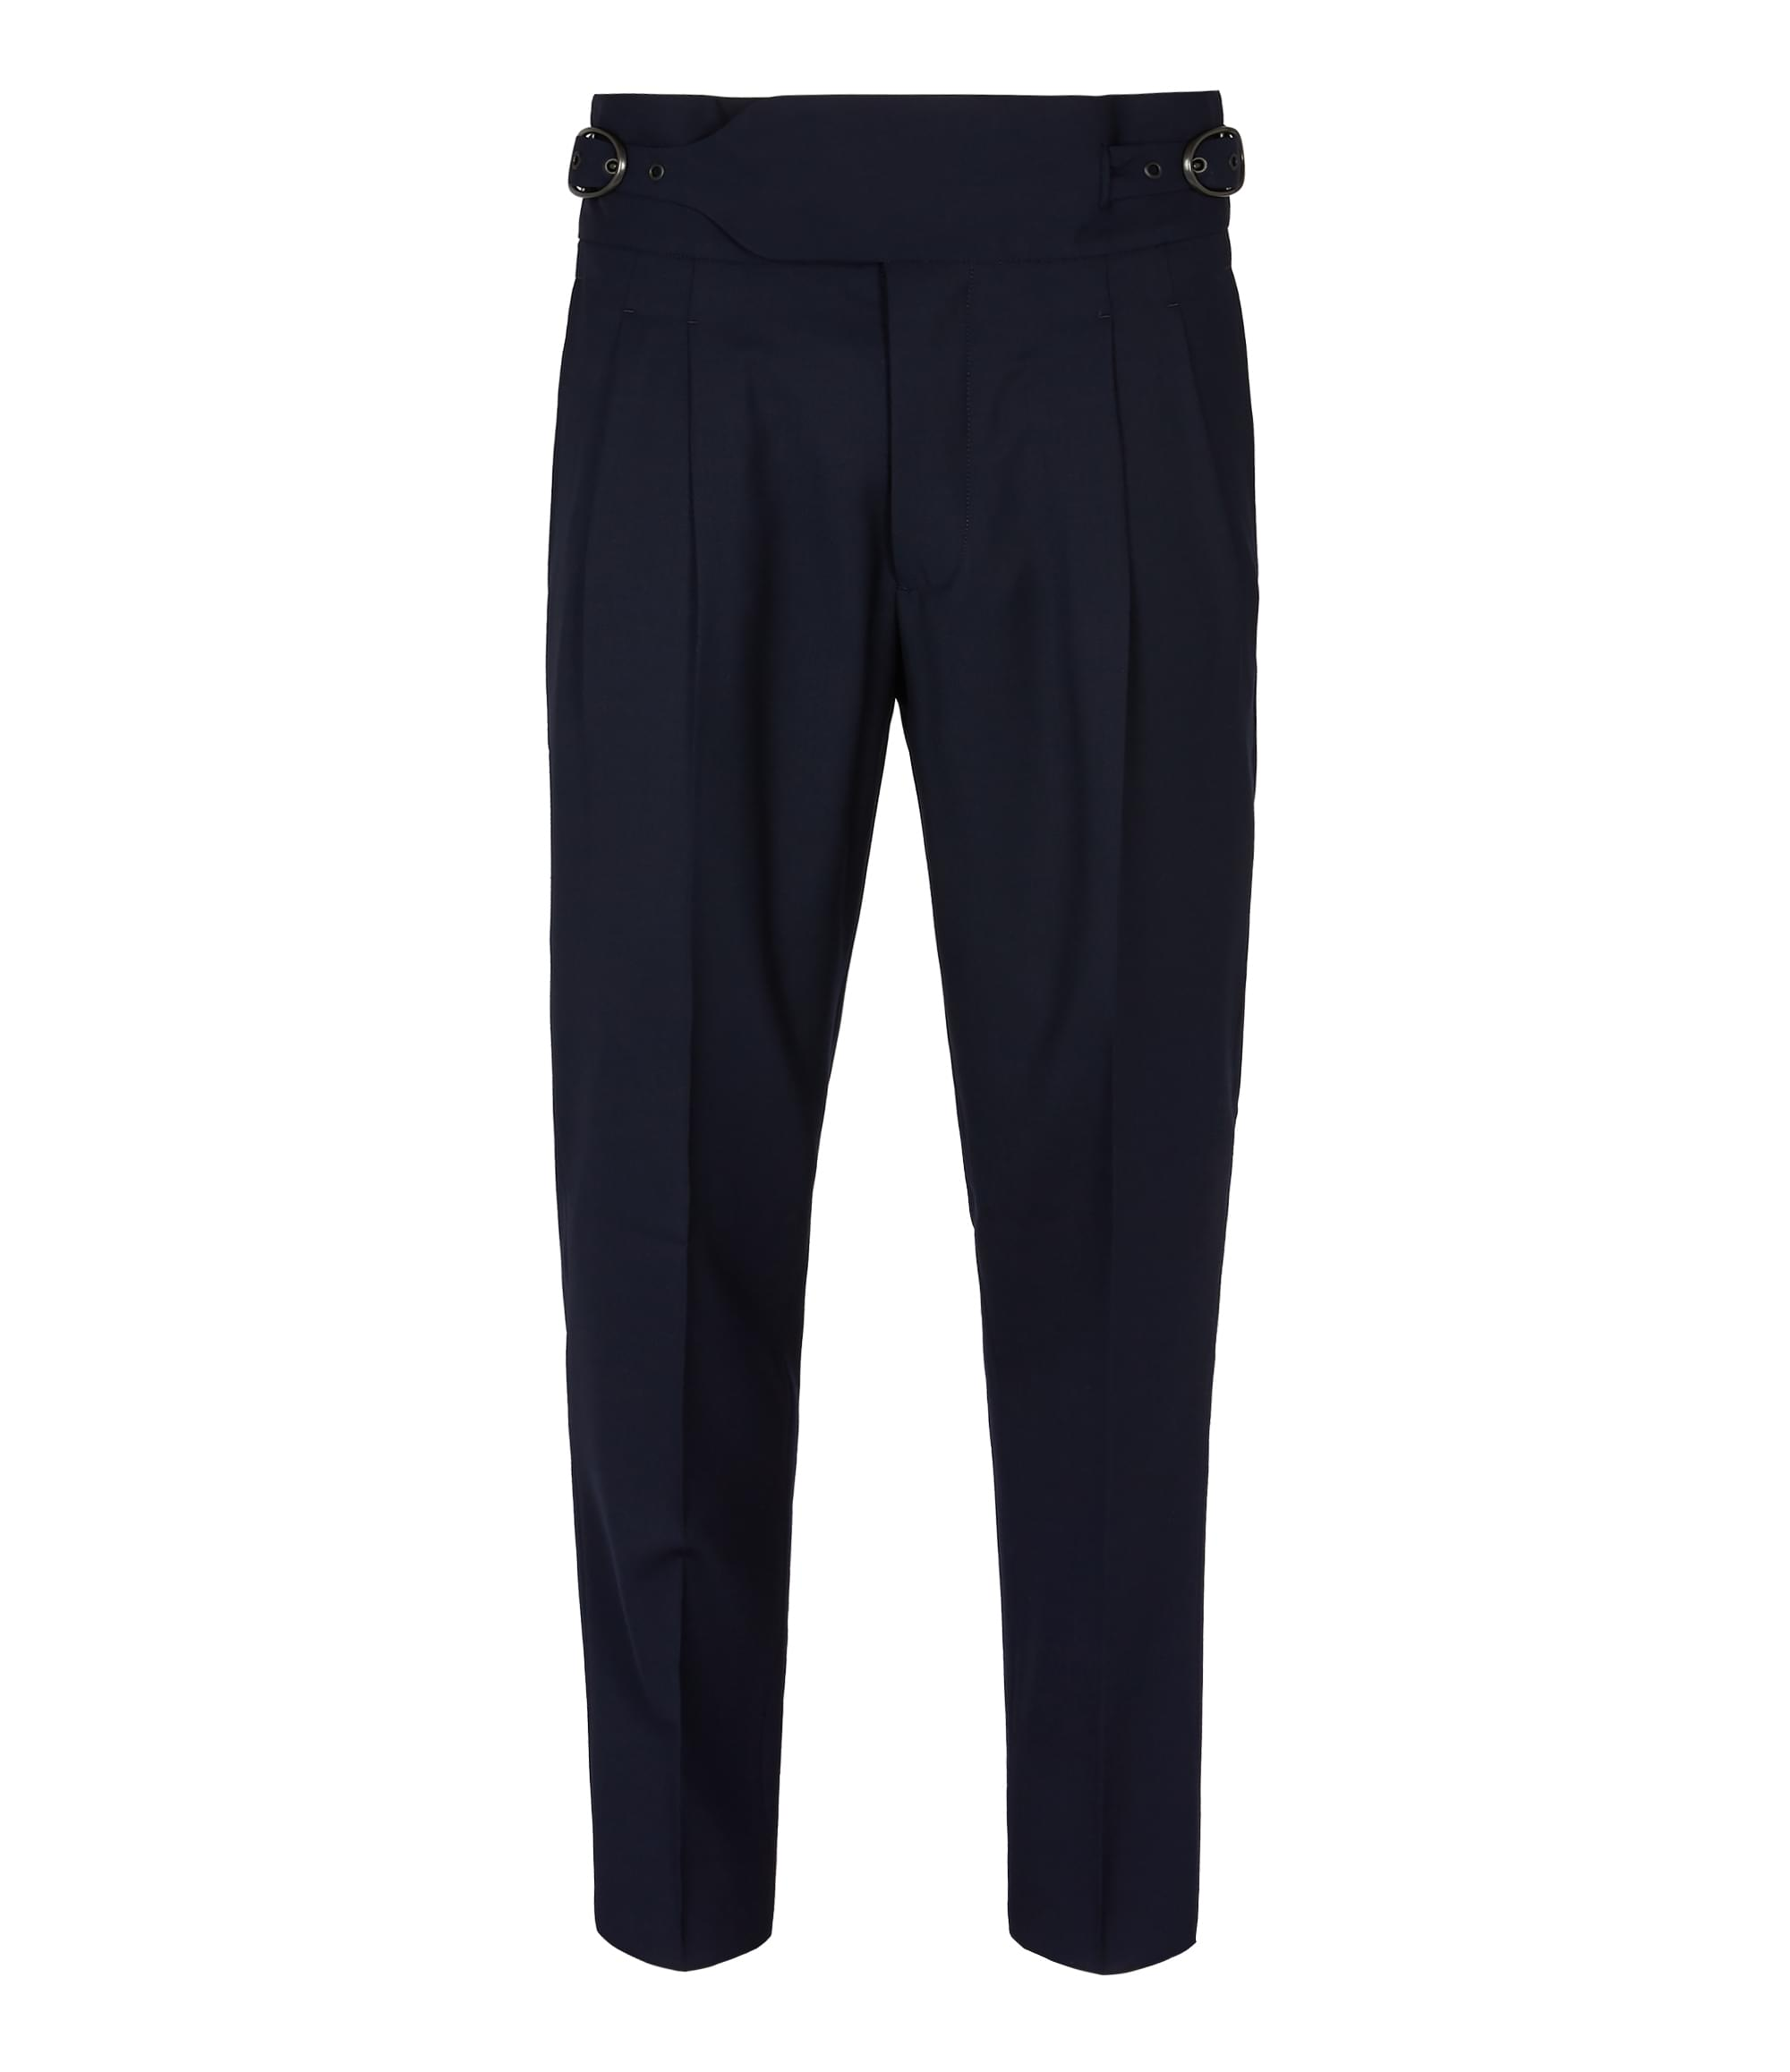 Vivienne Westwood New Classic Trousers Navy